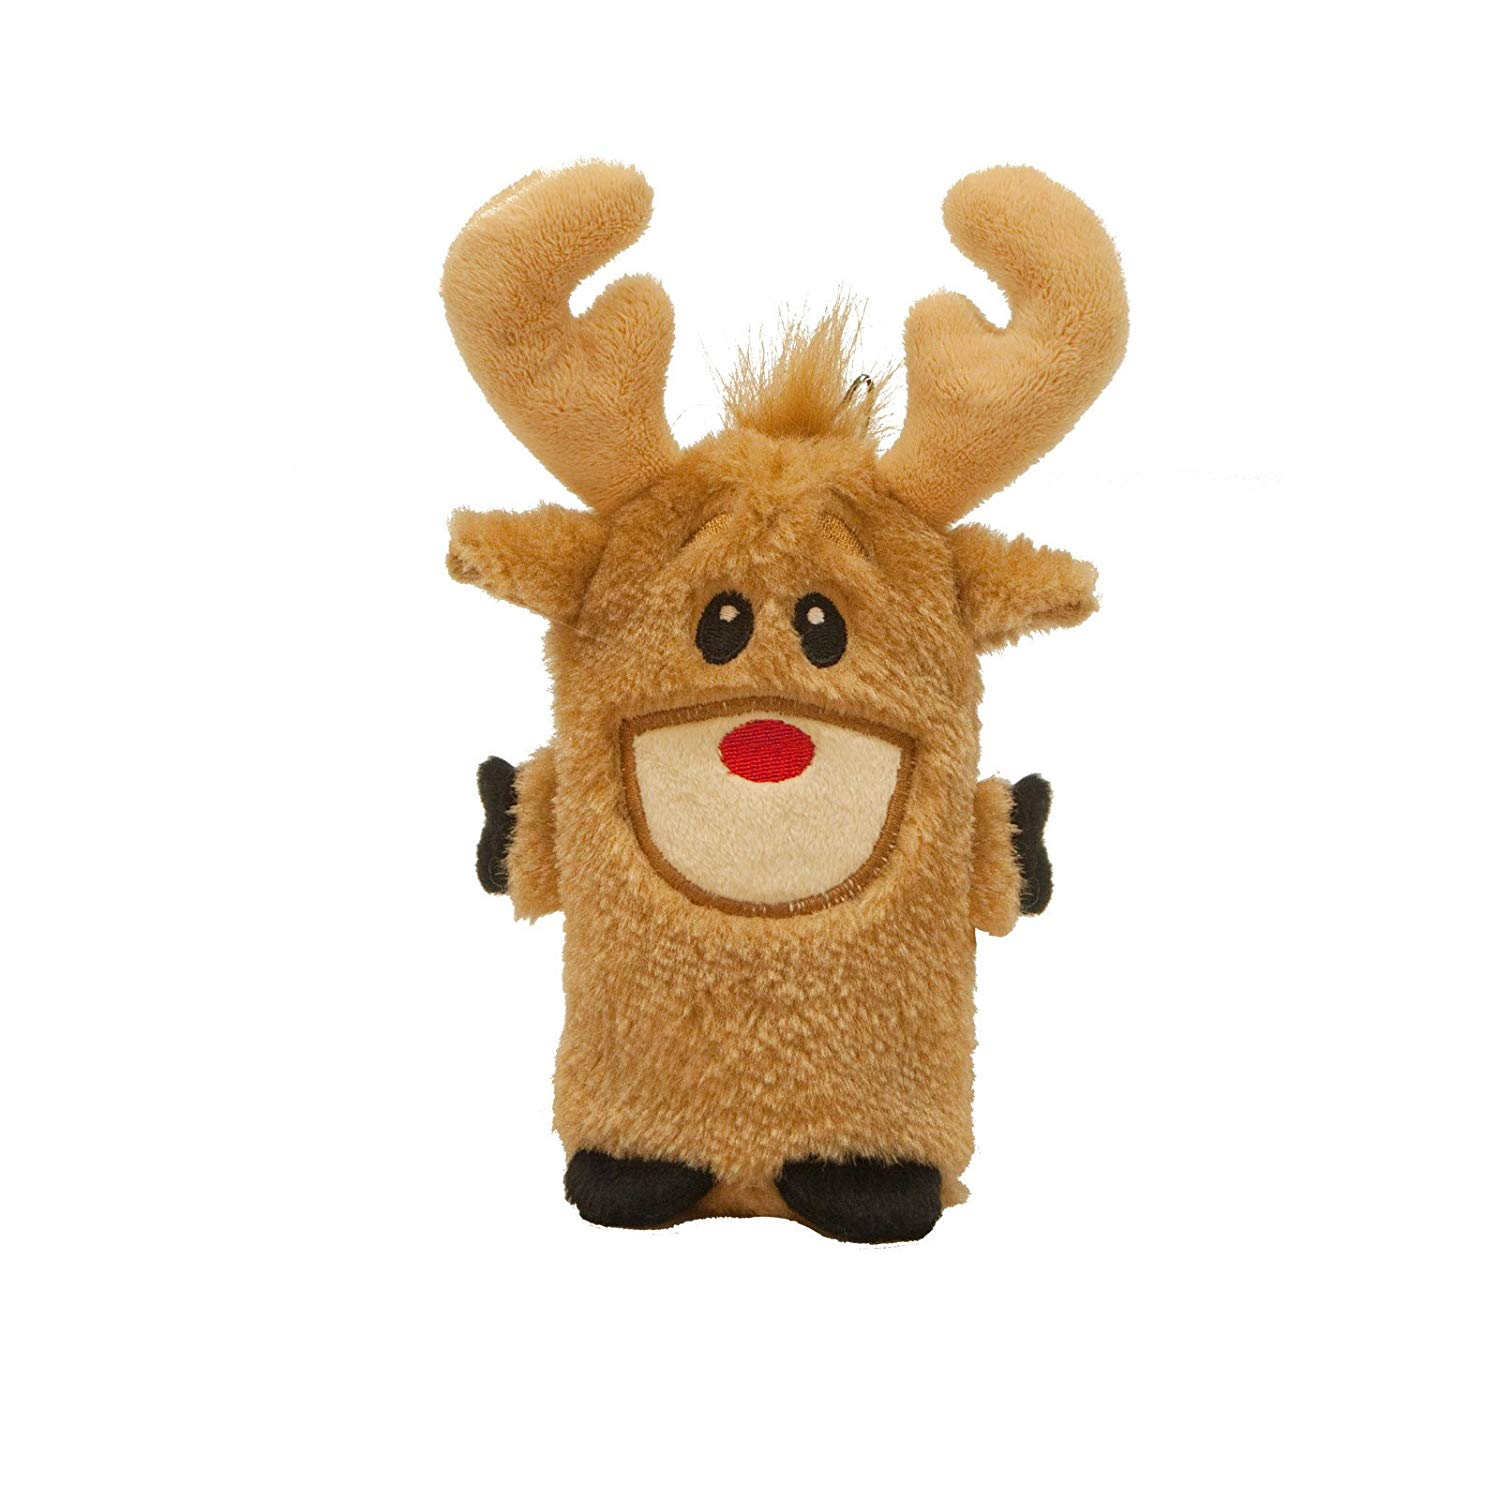 Kyjen 32105 Invincible Reindeer Mini Christmas Toy Squeaking Stuffingless Durable Dog Toy, Small, Brown, Brown, Holiday plush toy for dogs By Outward Hound